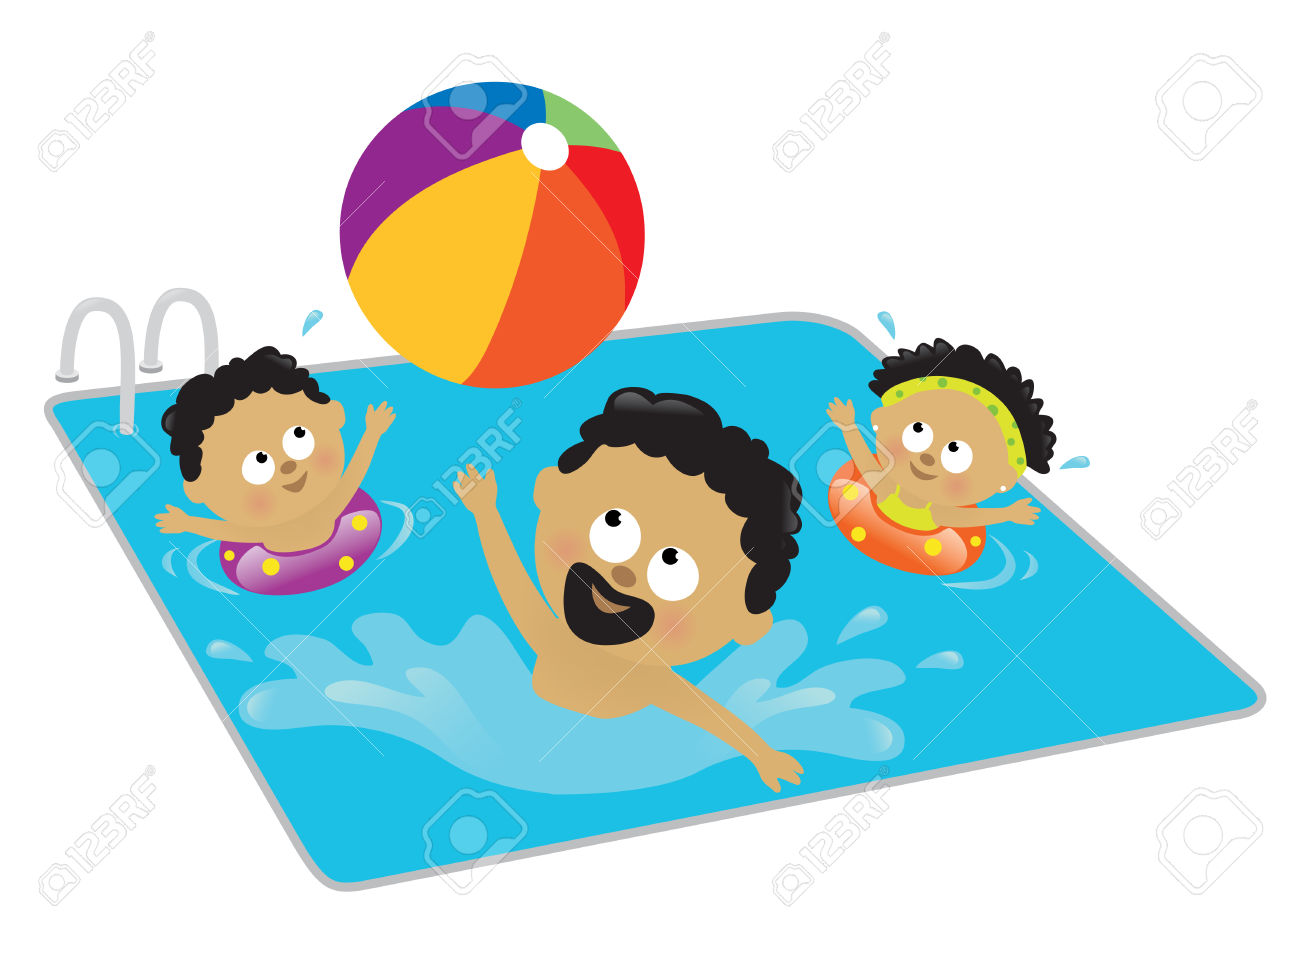 Free clipart for swimming svg black and white library Free Clipart Swimming | Free download best Free Clipart Swimming on ... svg black and white library